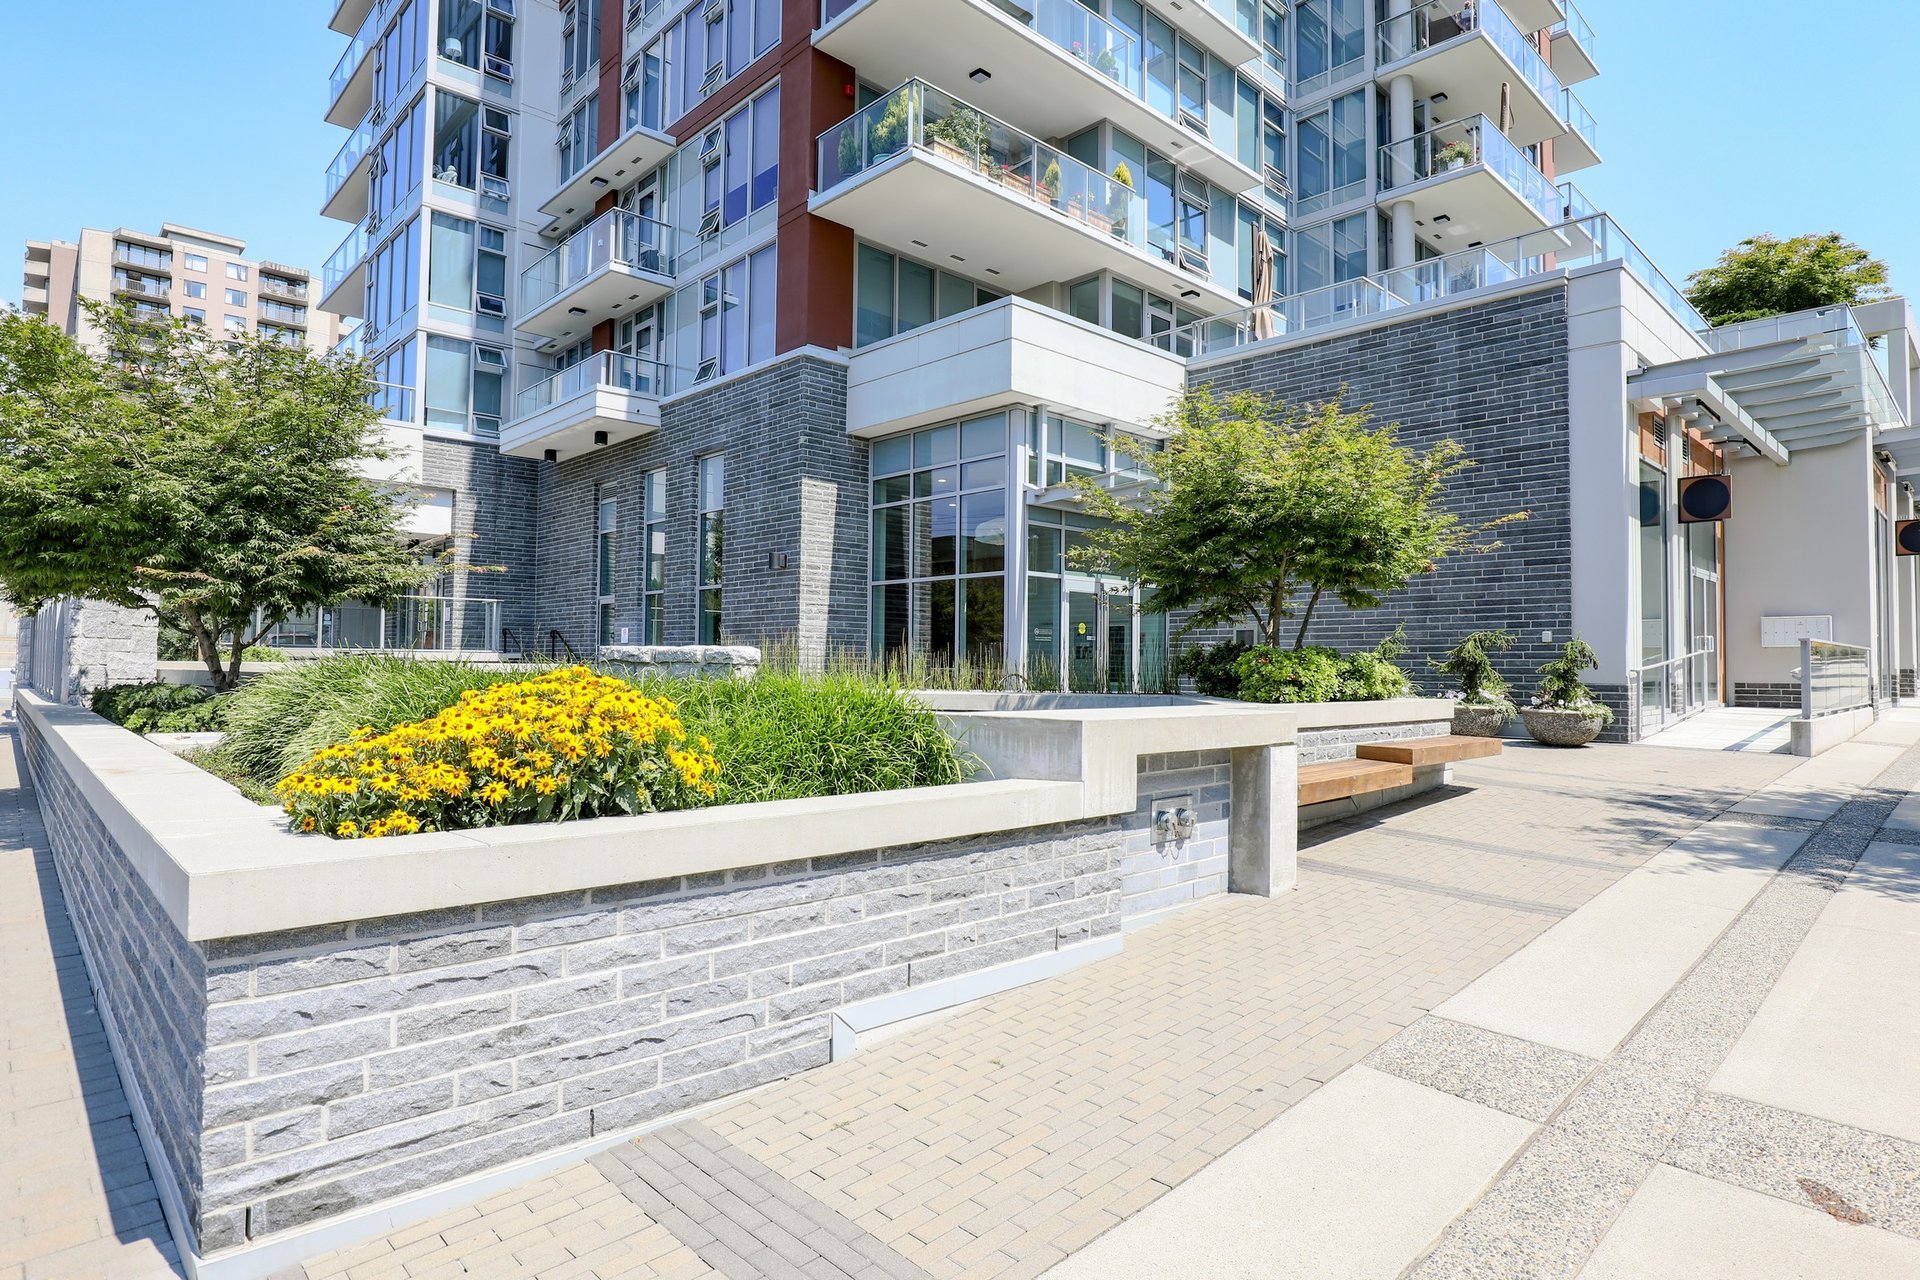 15 West - 150 W 15th St | Condos For Sale + New Listing Alerts